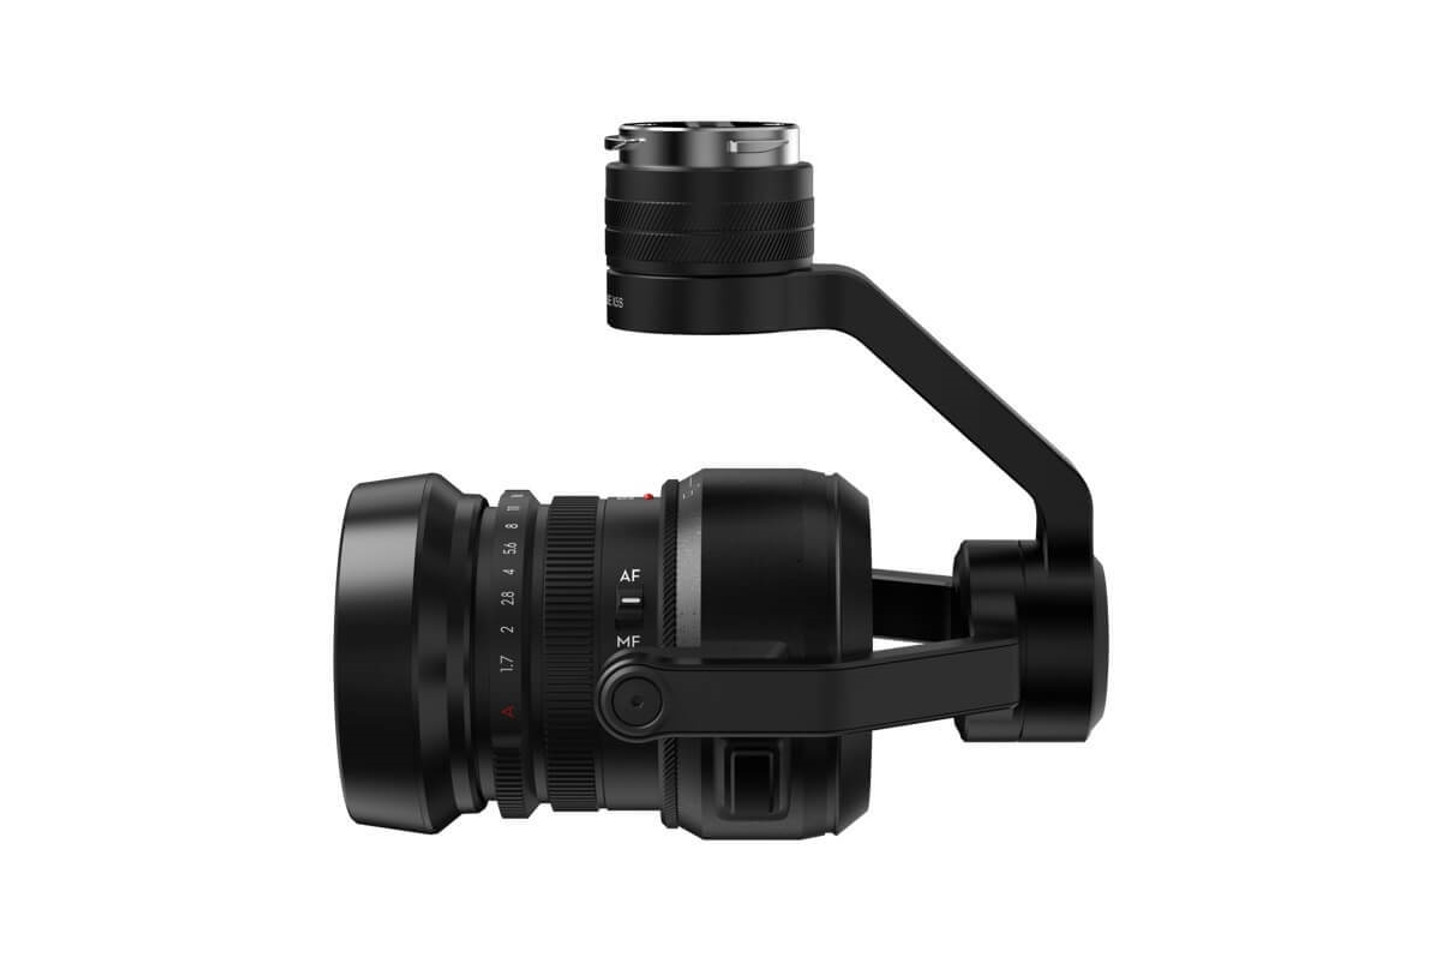 Inspire 2 Zenmuse X5S Camera and Gimbal